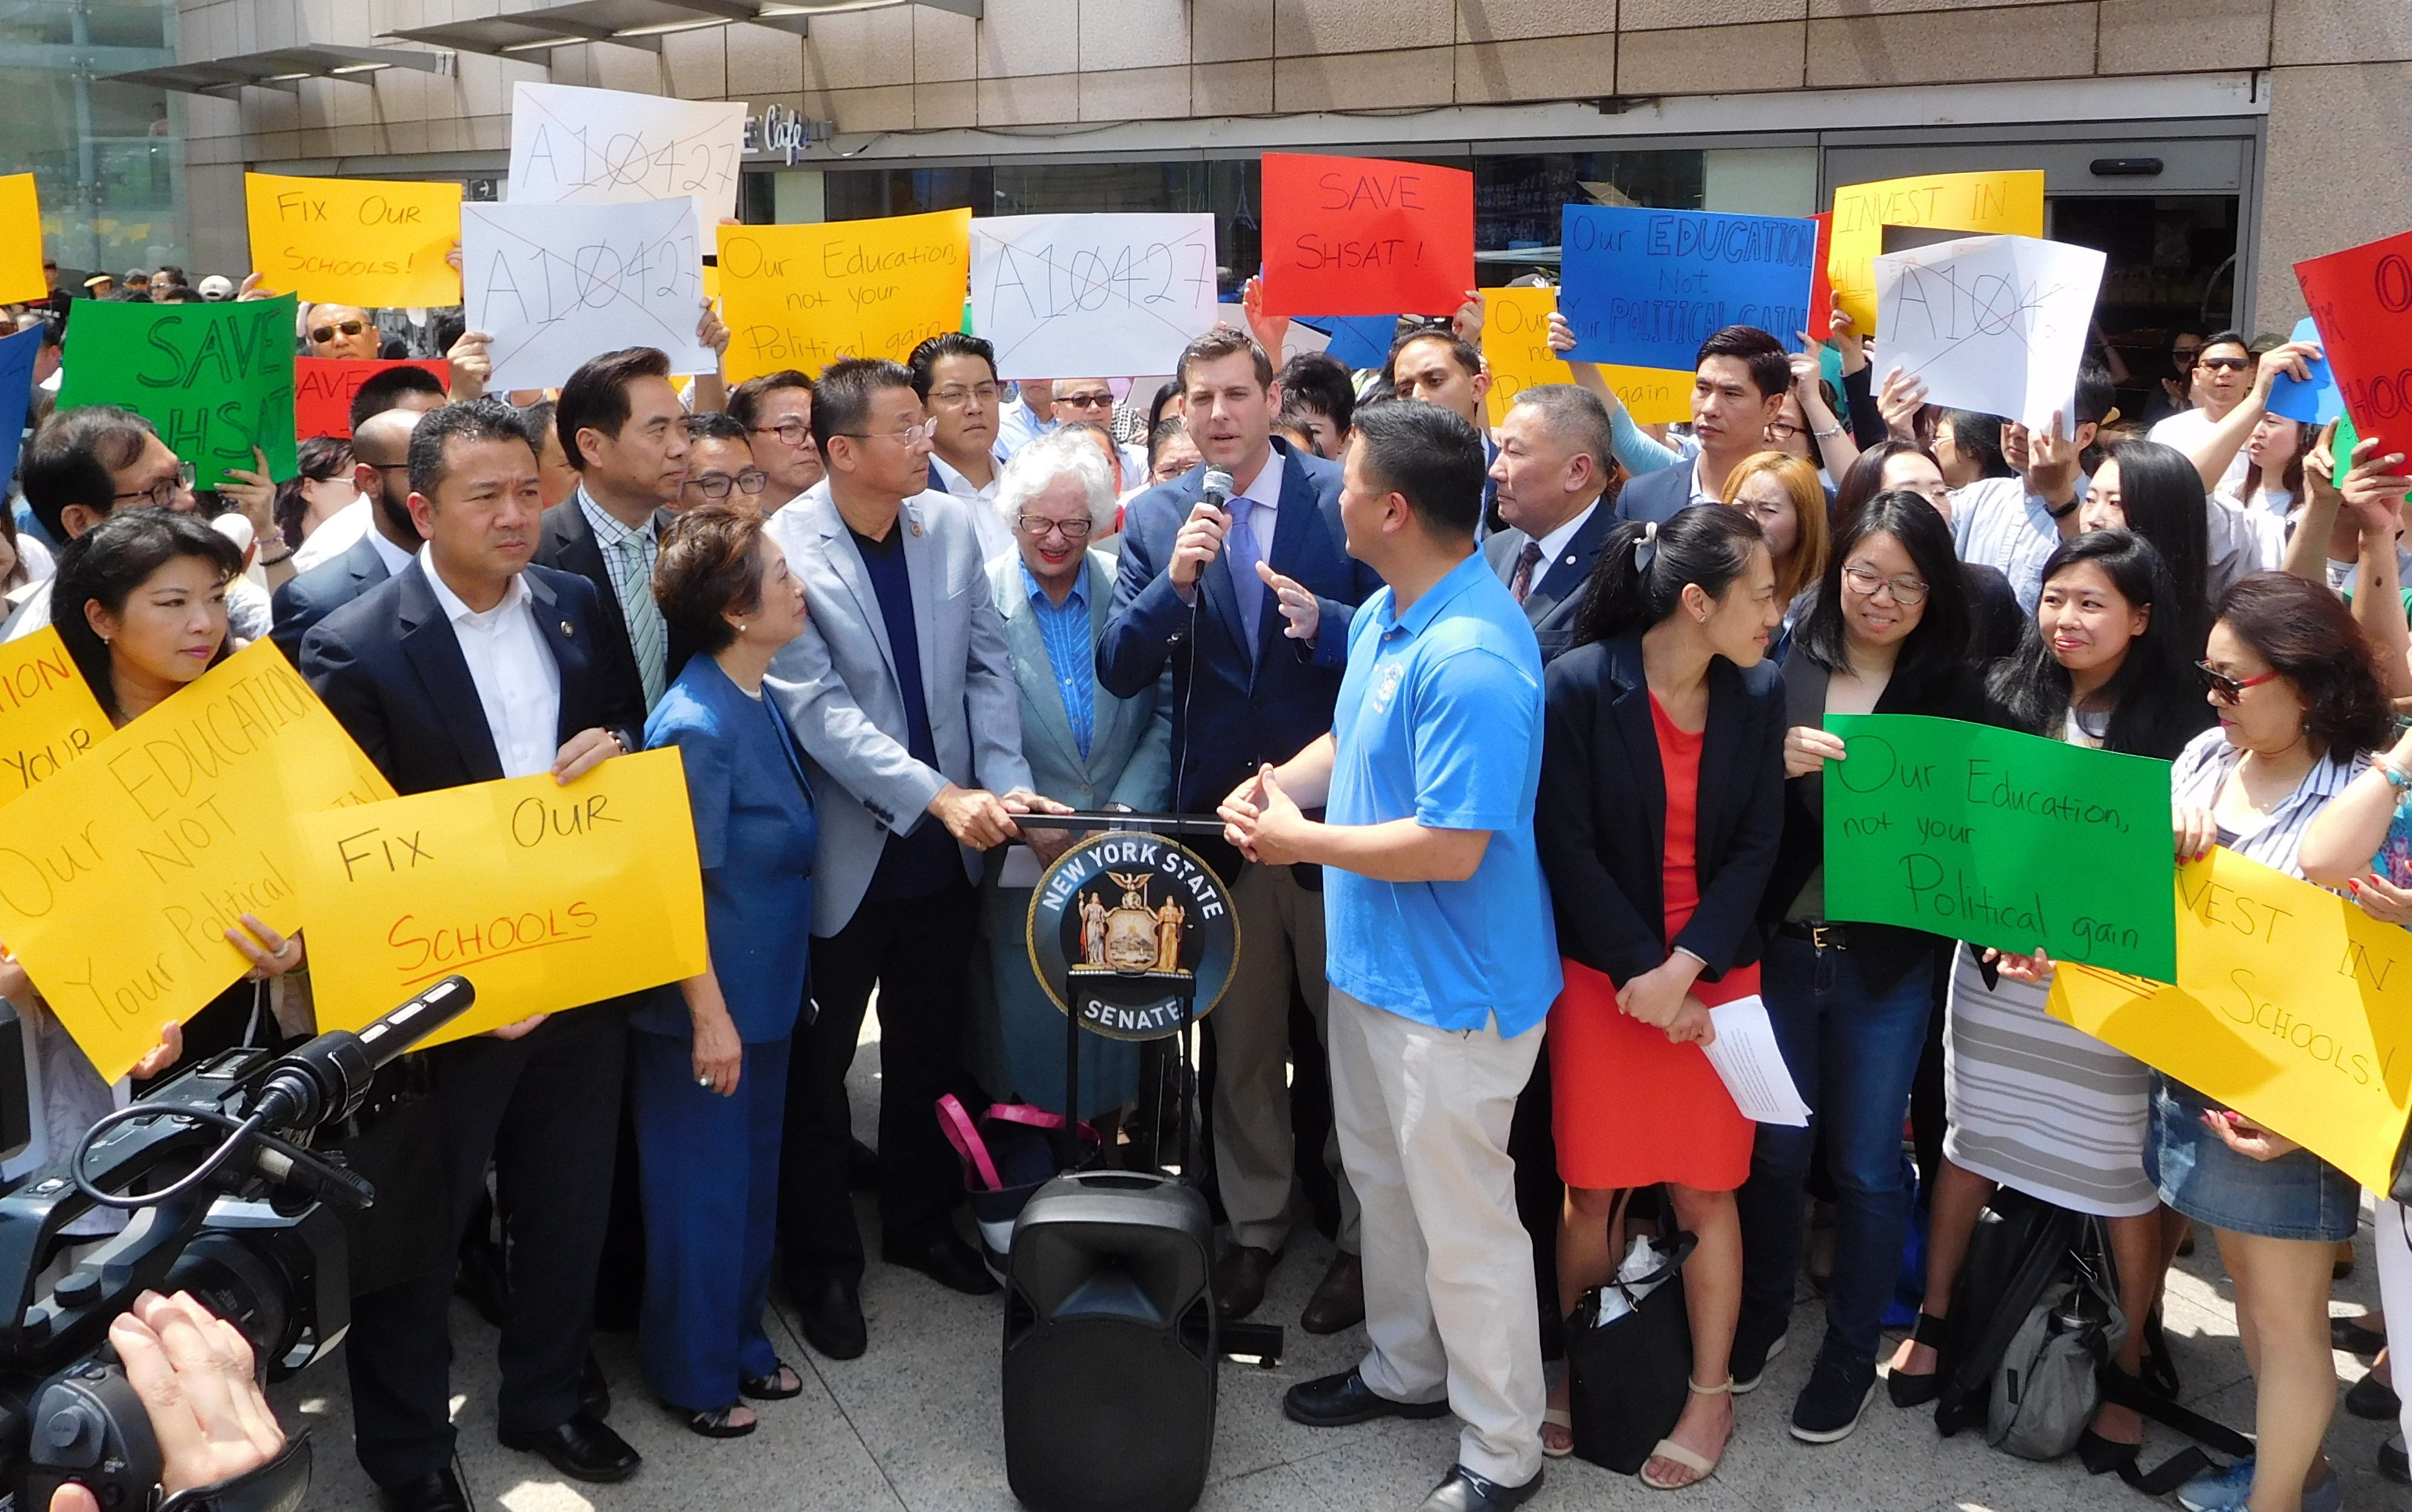 On June 8, 2018, Assemblyman Braunstein attended a rally against the proposed elimination of the Specialized High School Admissions Test.